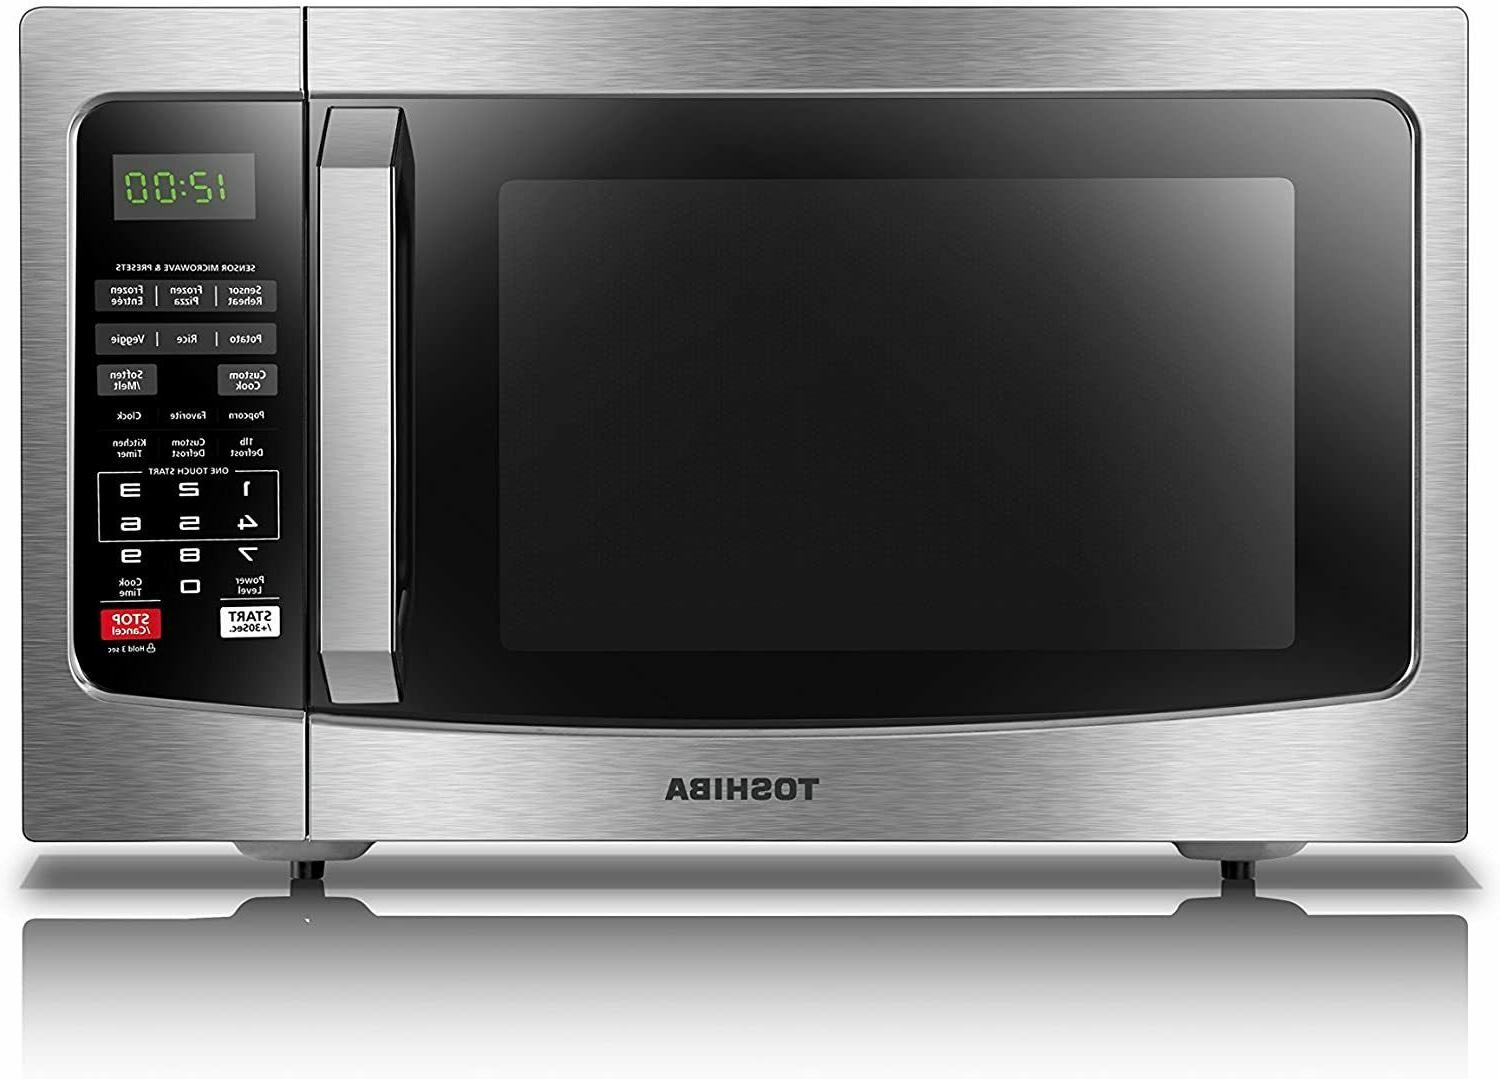 em131a5c bs microwave oven with smart sensor